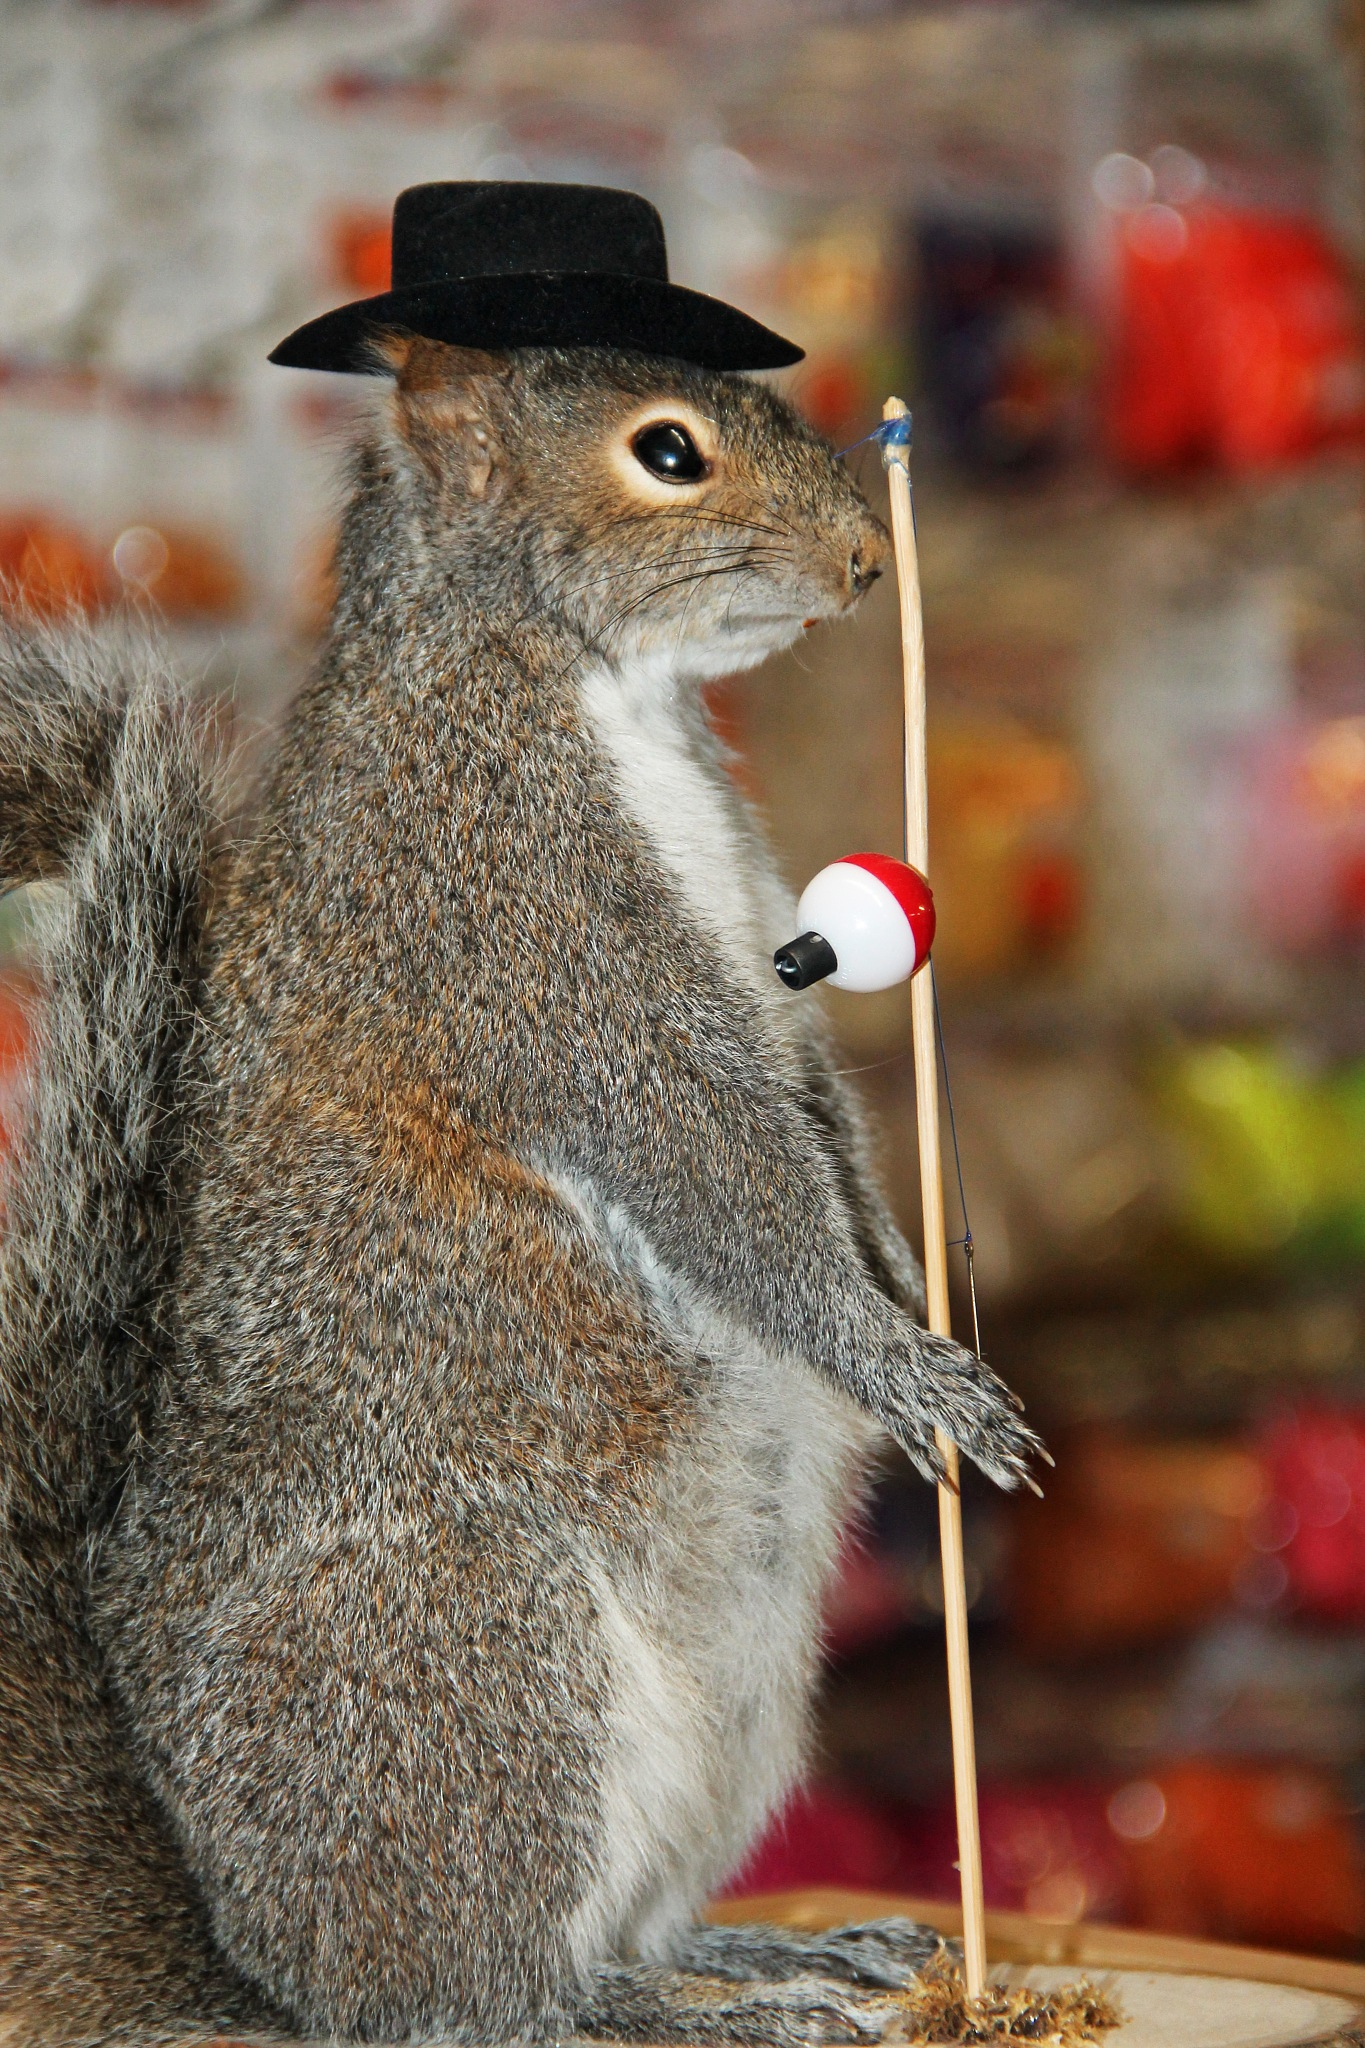 Just a Squirrel Goin' Fishing by christena.anderson